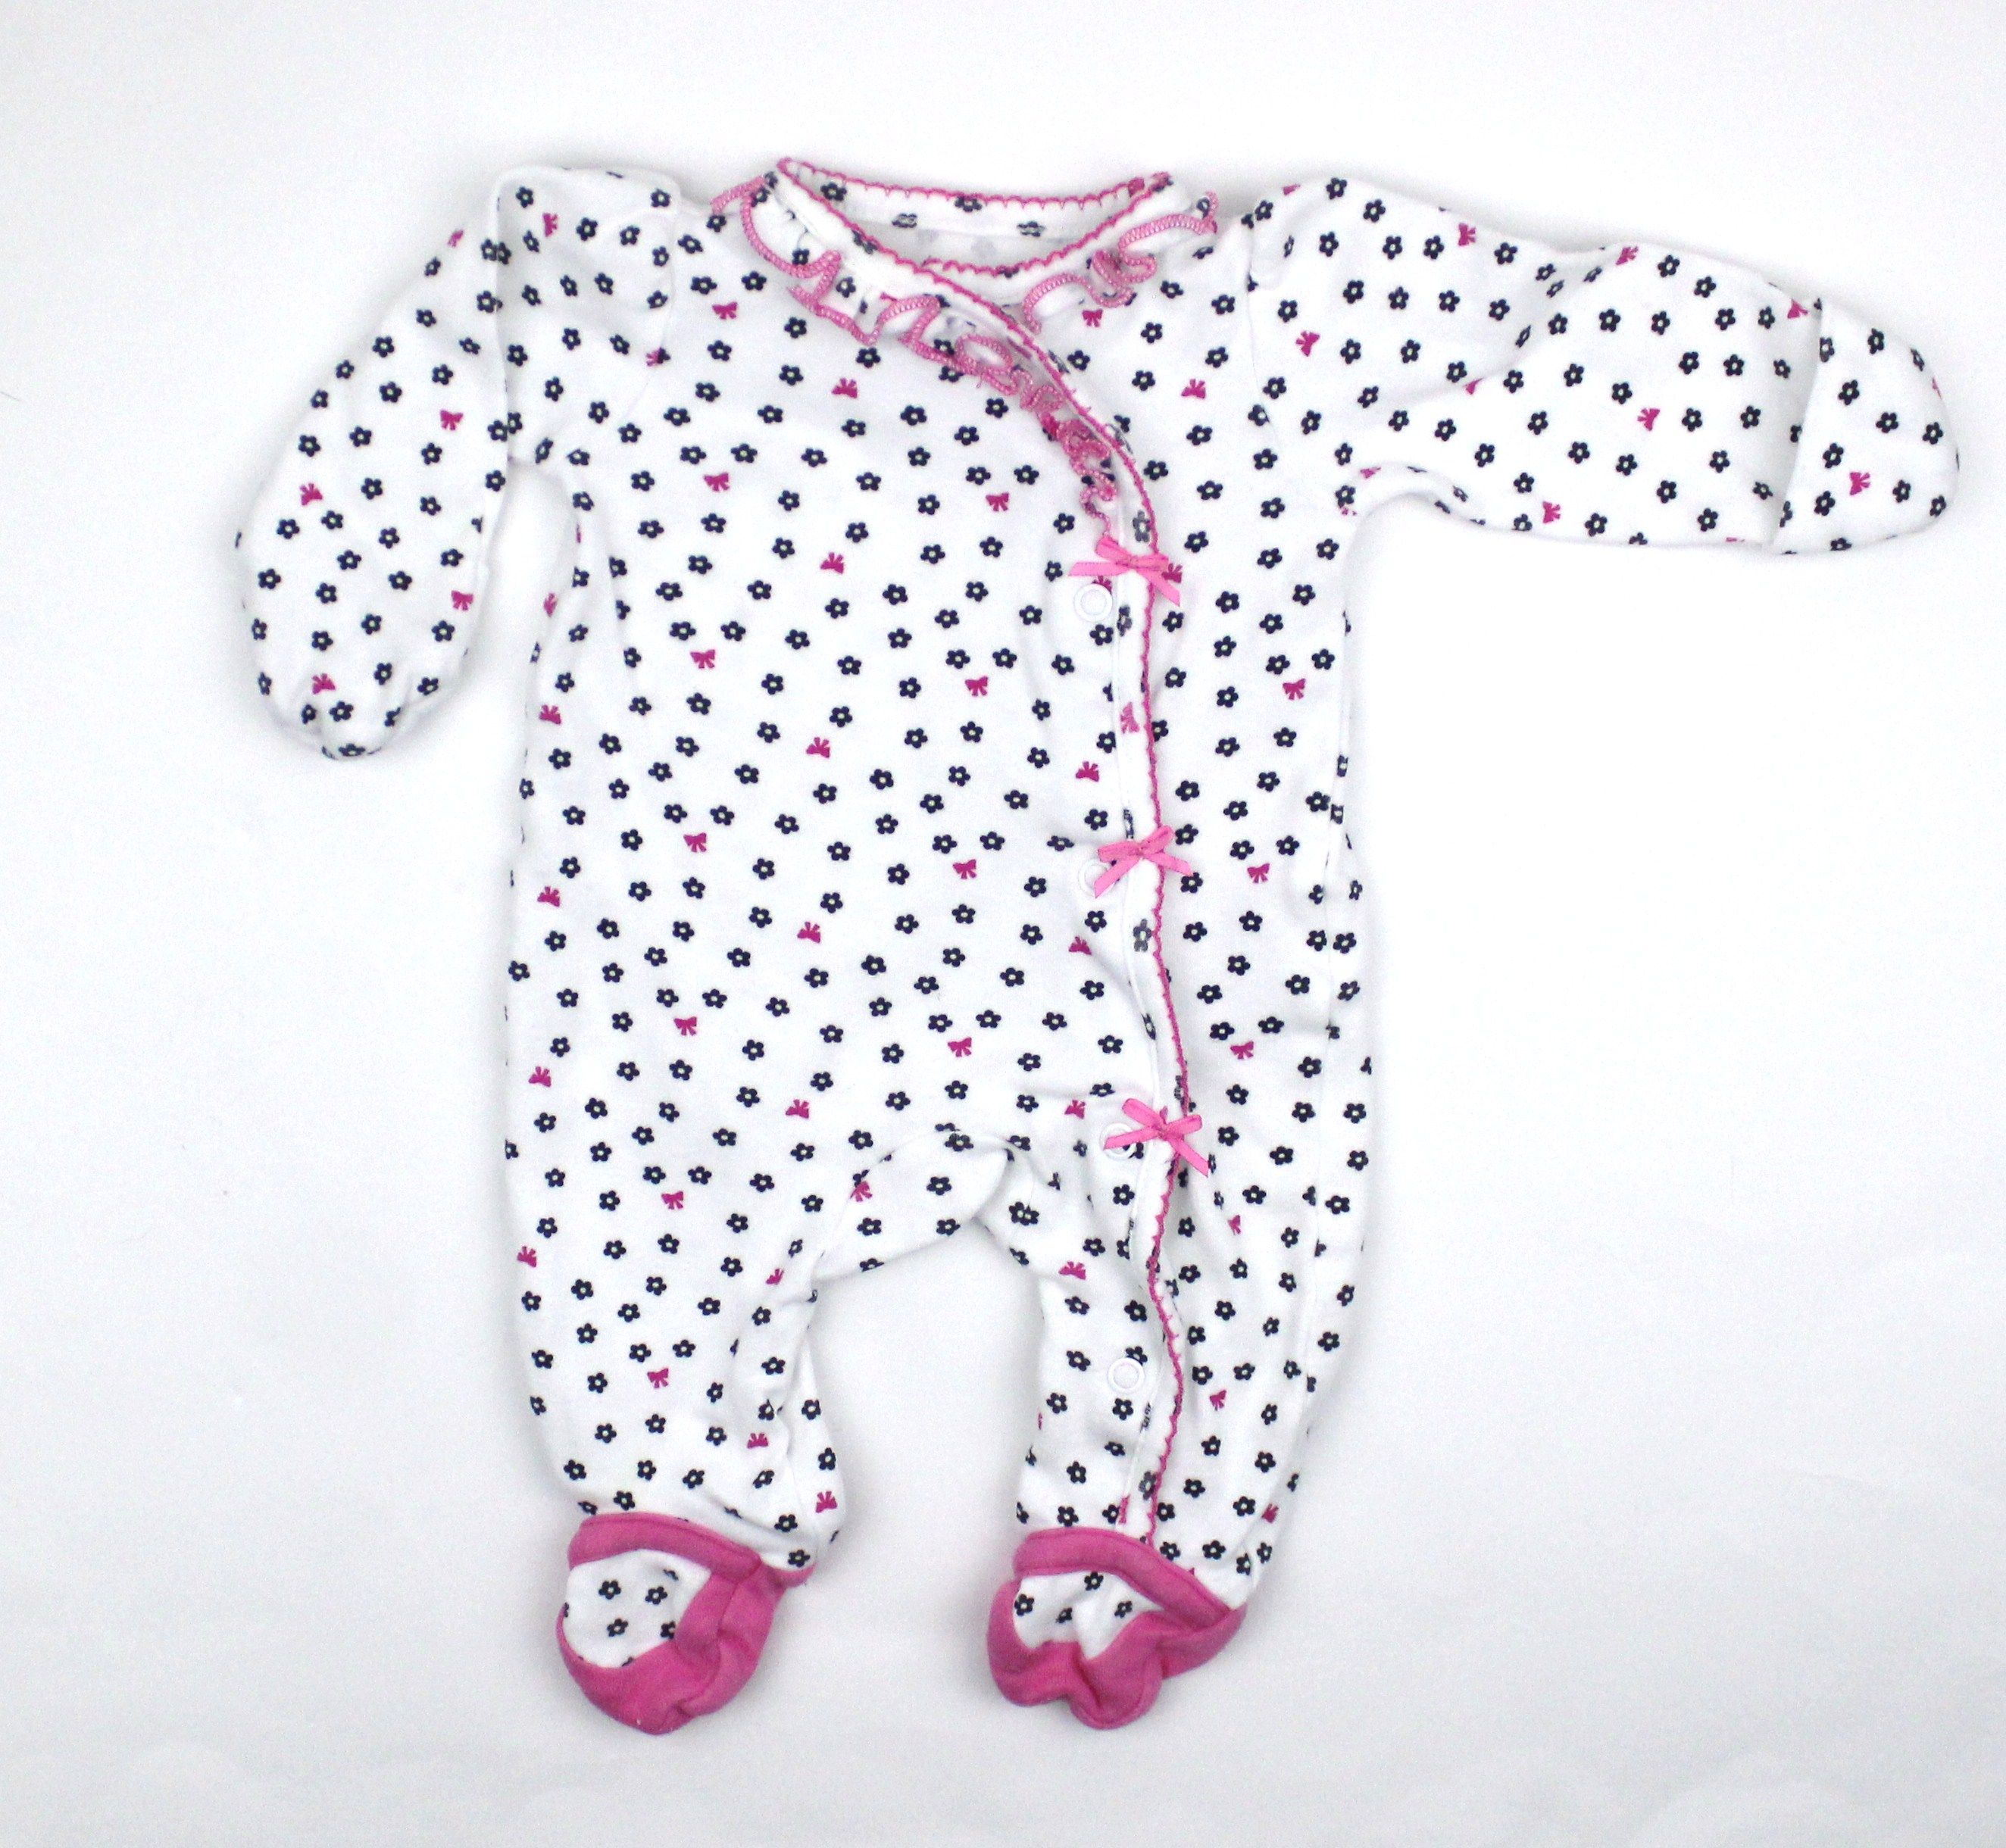 Newborn Baby Girl Sleeper by Carters ly $3 50 in Gently Used Baby